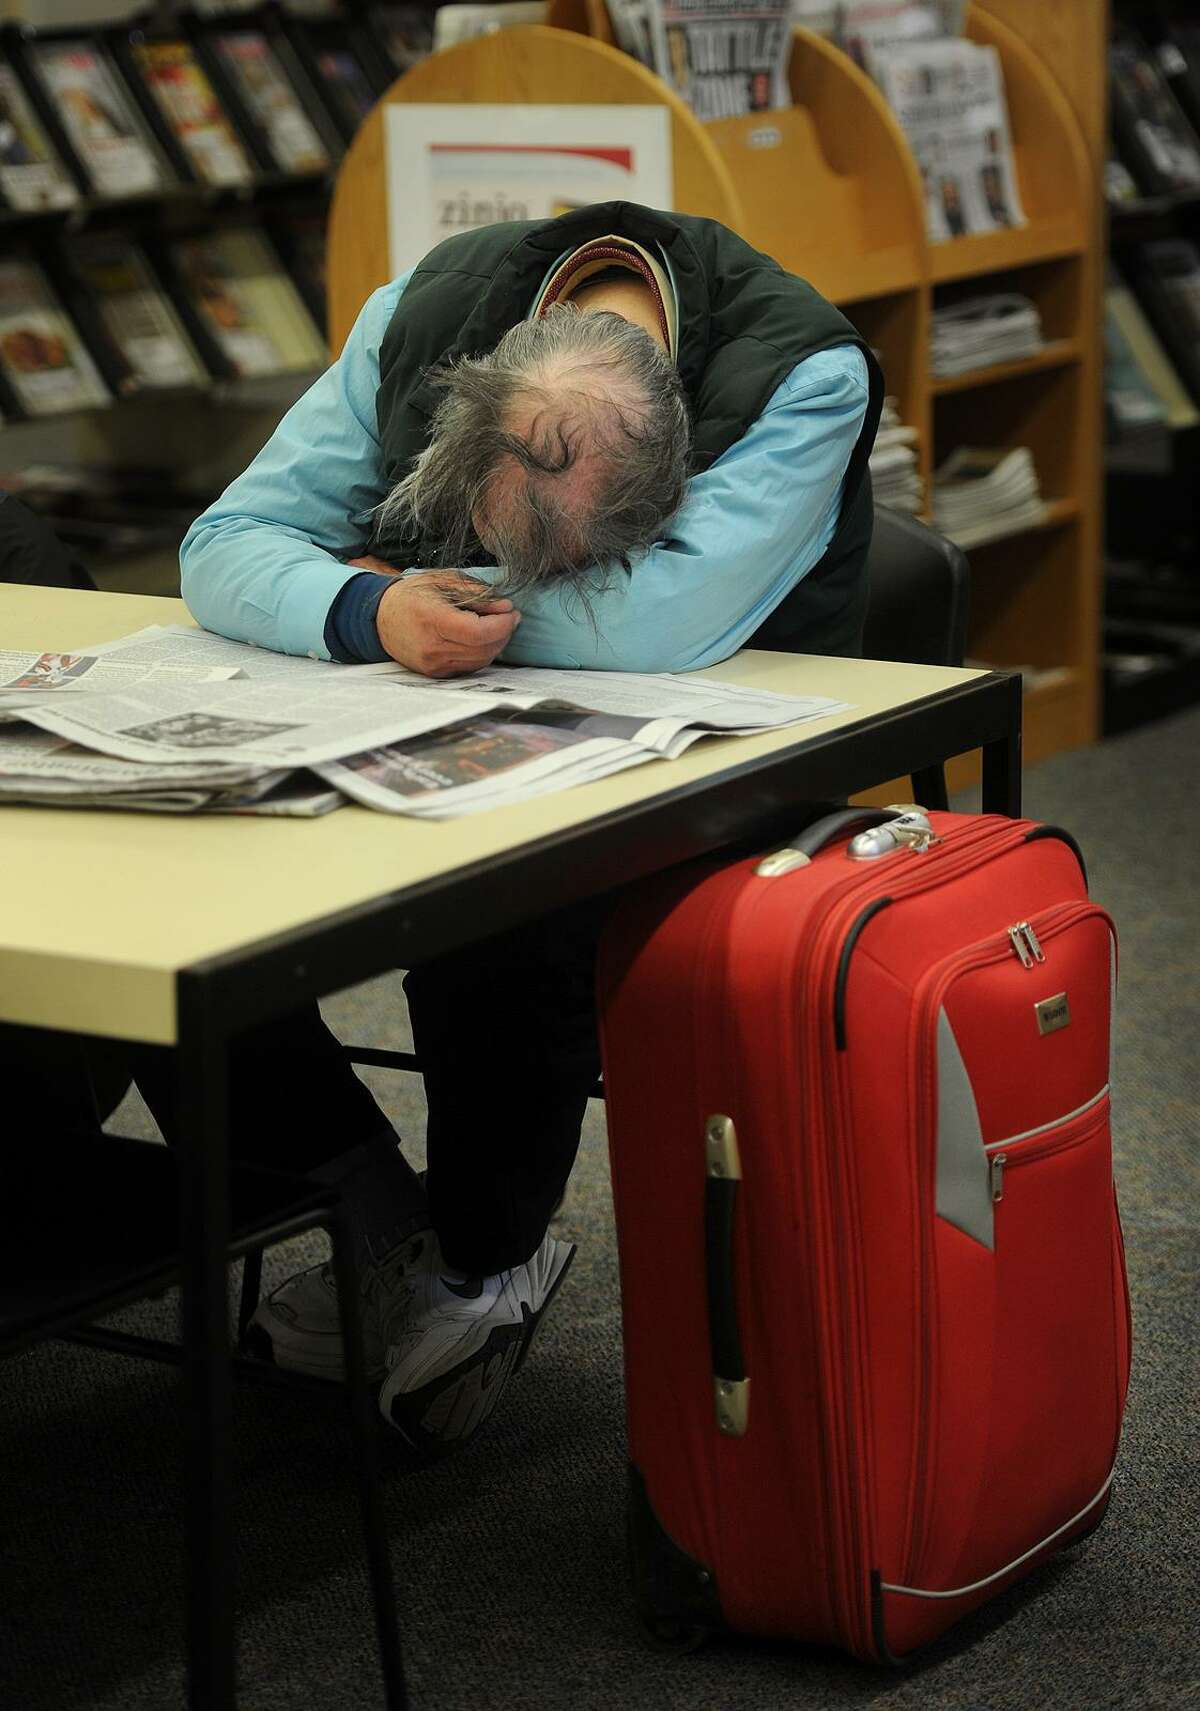 A man sleeps next to a suitcase of his belongings at the Bridgeport Public Library on Wednesday.